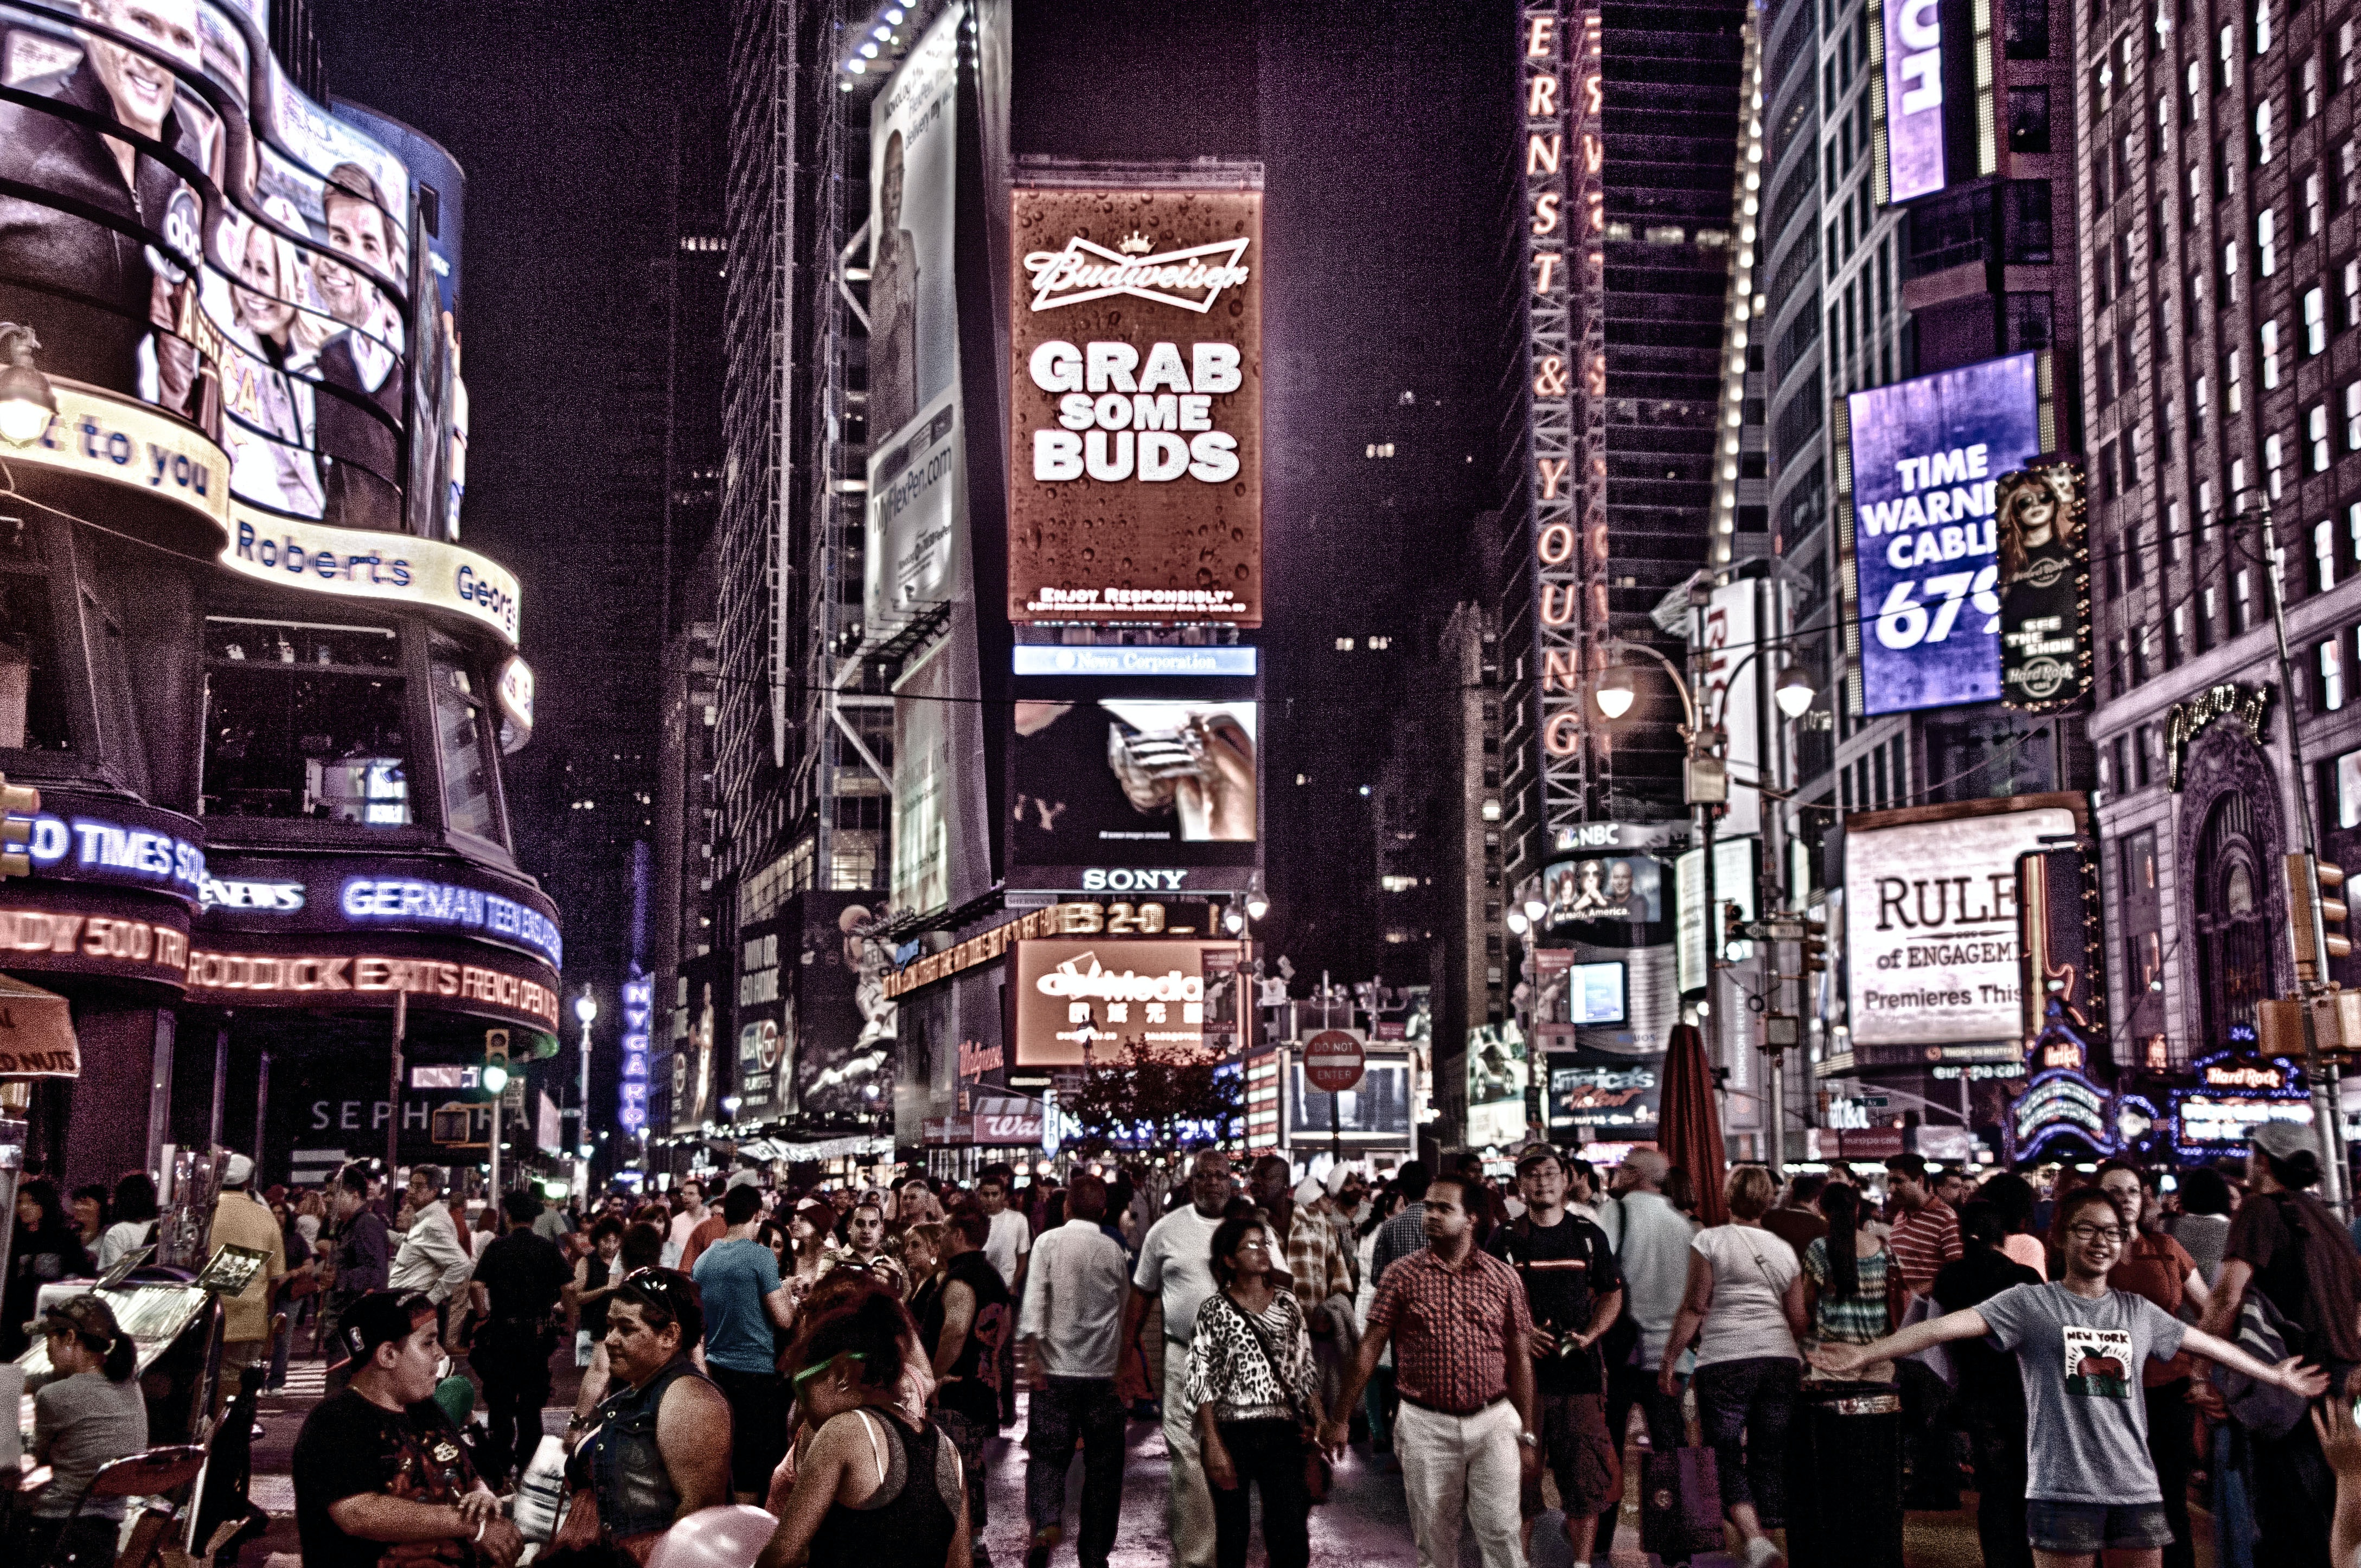 Photo Of People Walking In The Streets Of New York City Free Stock Photo